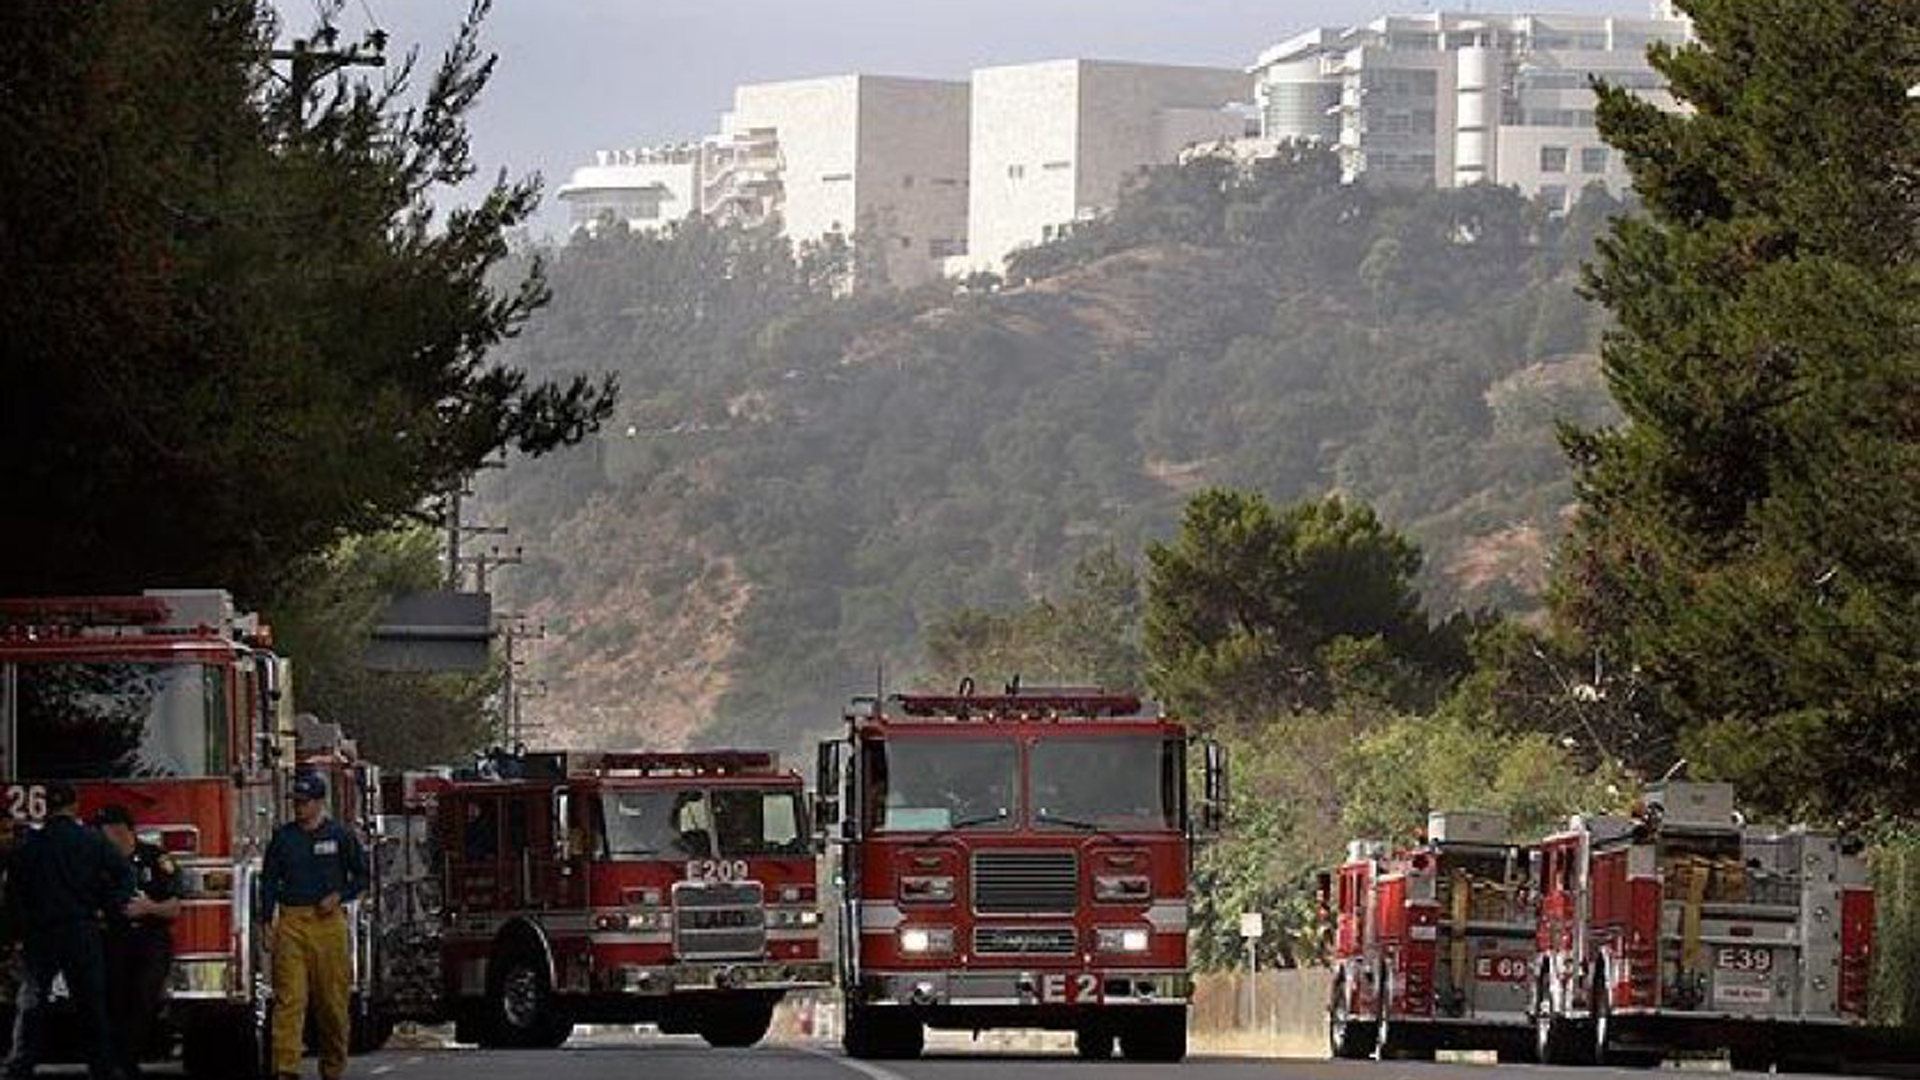 Fire trucks at a staging area on Sepulveda Boulevard near the Getty Center entrance.(Credit: Al Seib / Los Angeles Times)